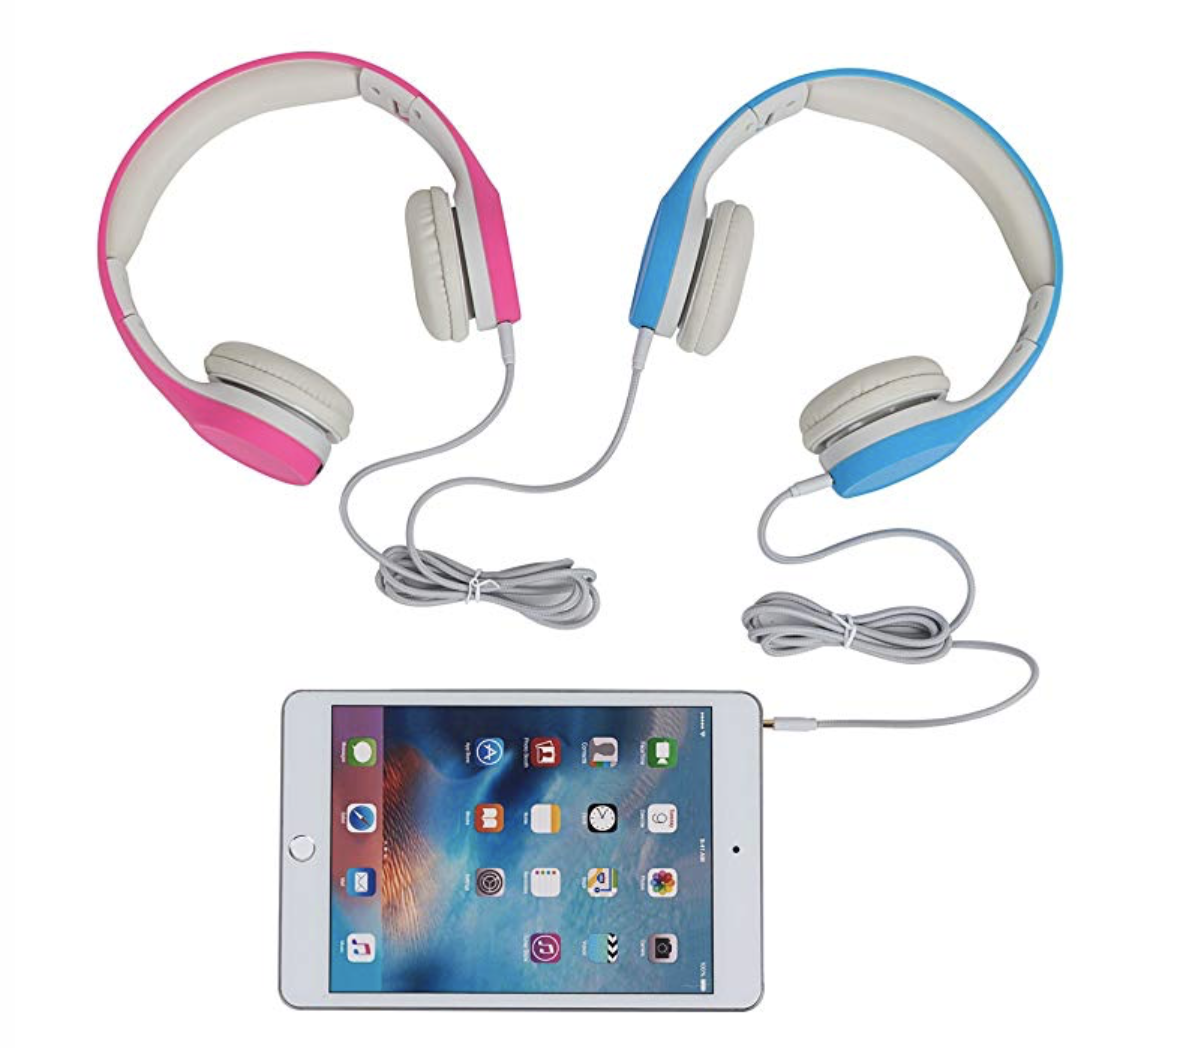 Headphones & Tablet - There is a time and place for screen time and a travel day is definitely a day it comes in handy. These headphones are comfortable for our girls and I love that they connect together so they can listen or watch from the same device. They also have a volume limit to protect their little eardrums.